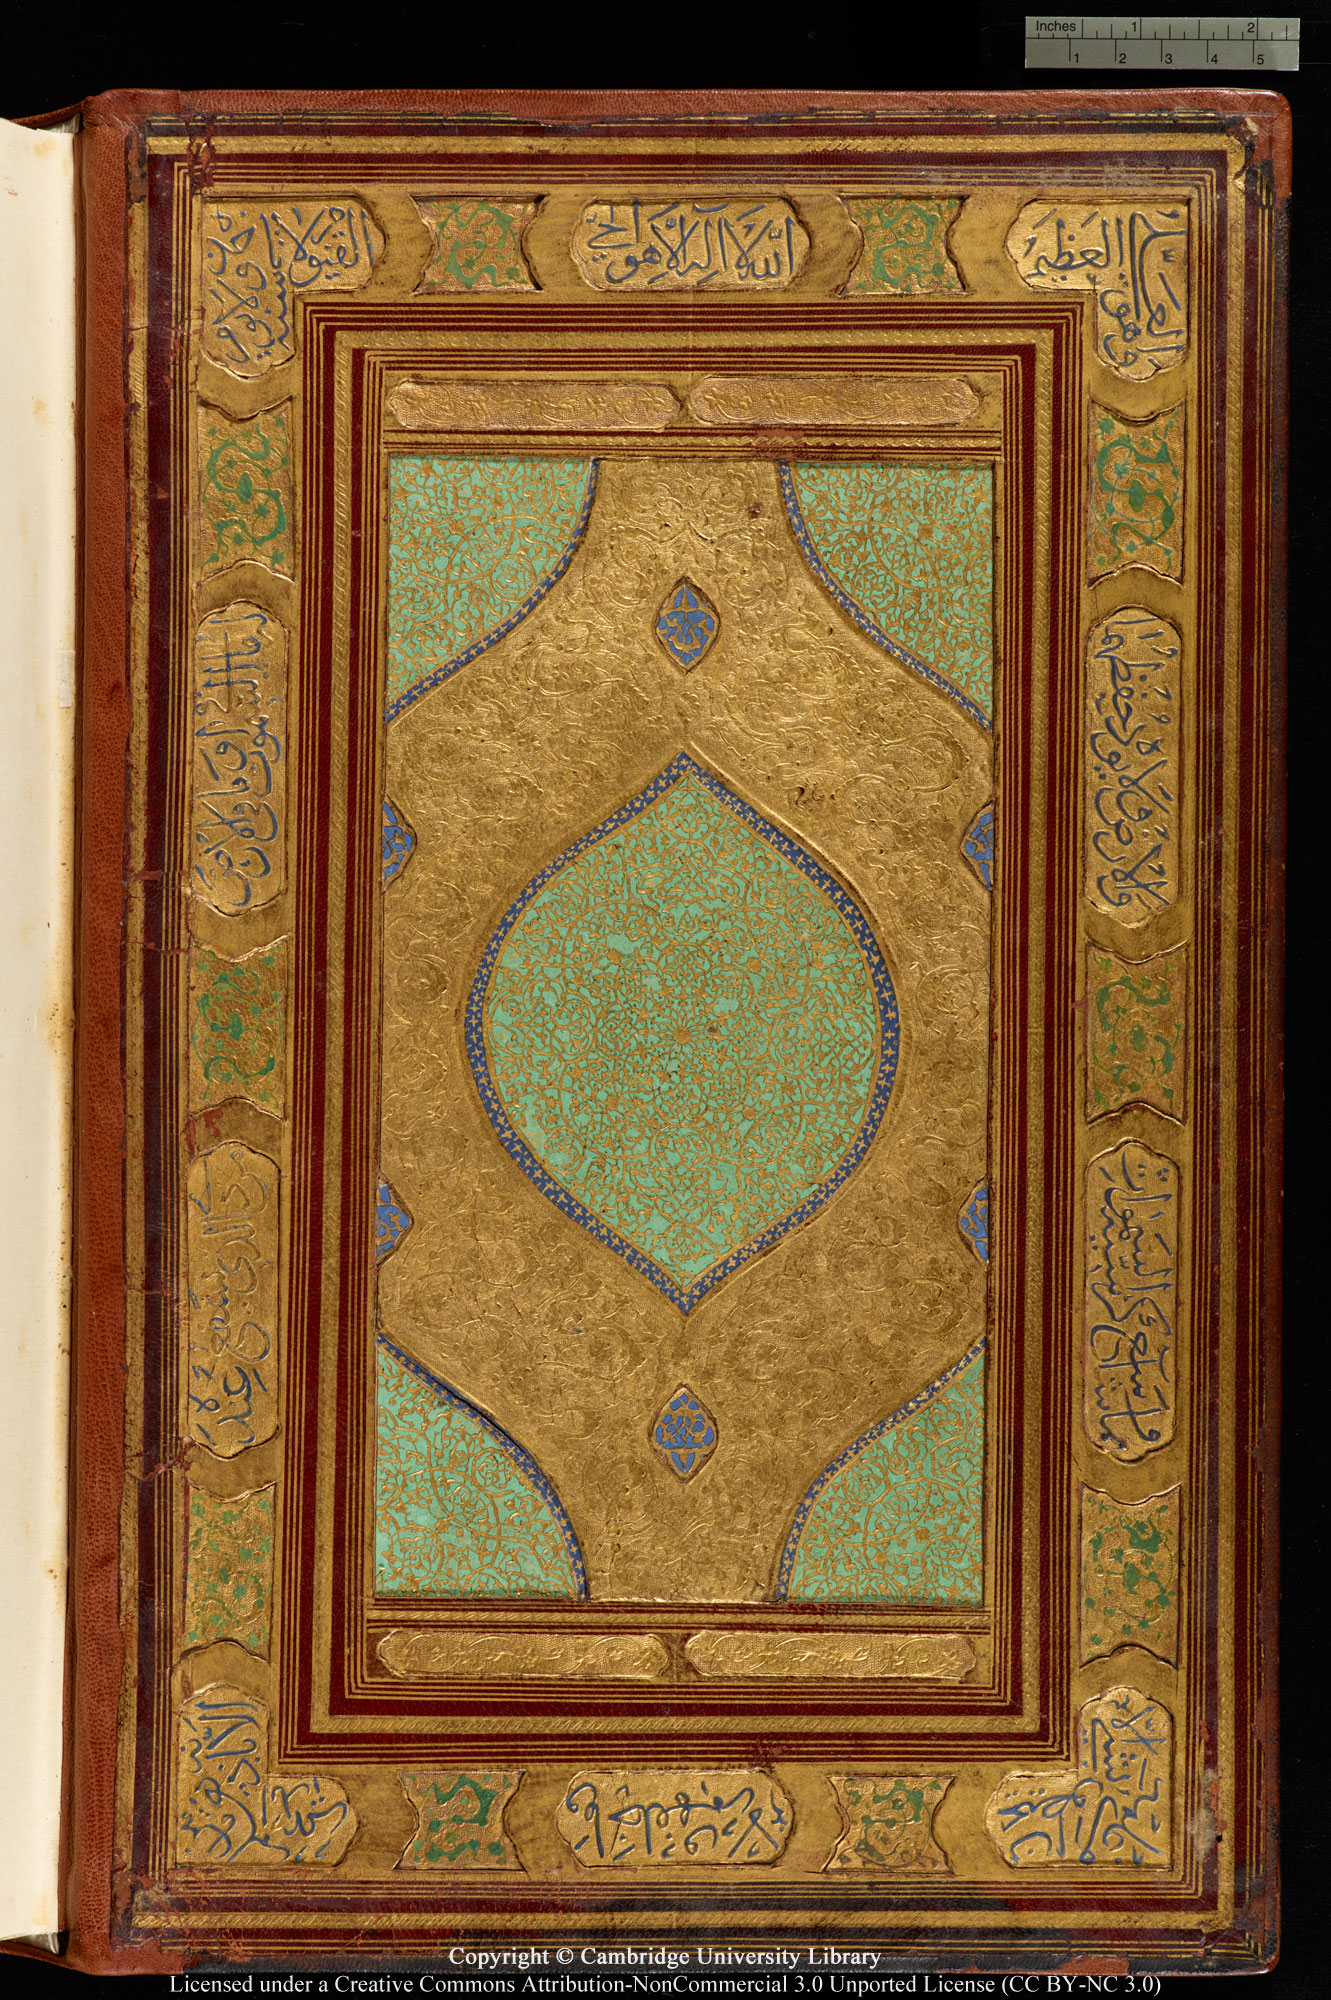 al-Qur'ān (Nn.3.75), Illuminated Qurʾān from the library of Tipu Sultan, presented to the University of Cambridge by the Court of Directors of the East India Company in 1806. Accessible in the Cambridge digital library: https://cudl.lib.cam.ac.uk/view/MS-NN-00003-00075/1